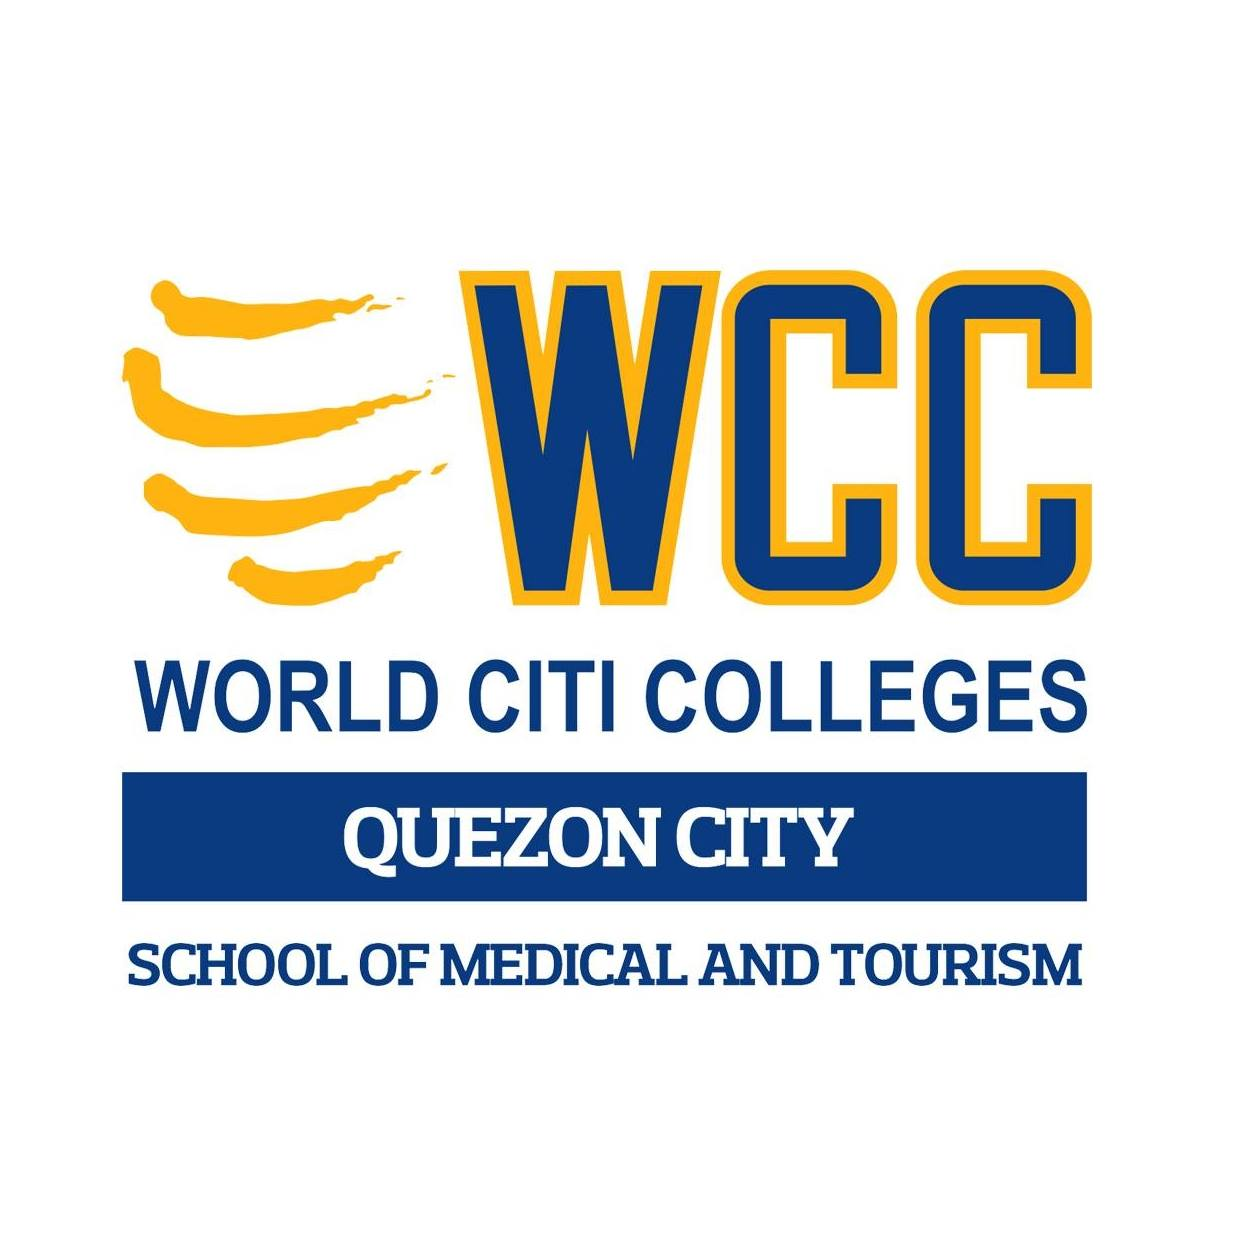 World citi colleges quezon city